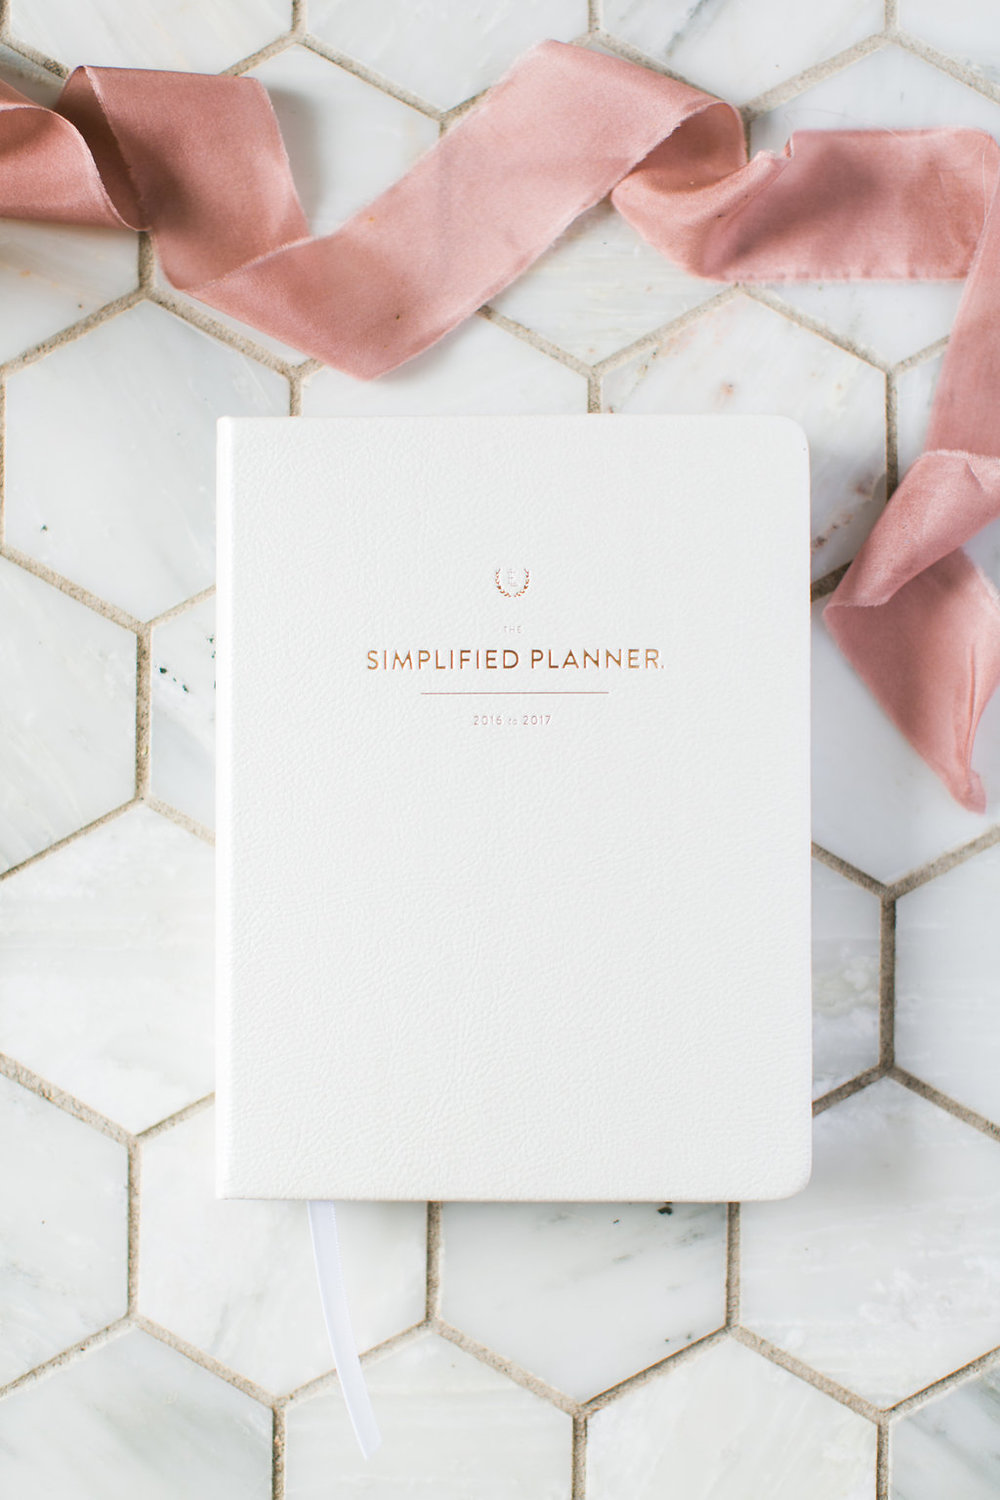 Simplified Planner by Emily Ley | The School of Styling Chapel Hill, NC | Ally & Bobby Photography | Parlour at Mann's Chapel | www.theschoolofstyling.com